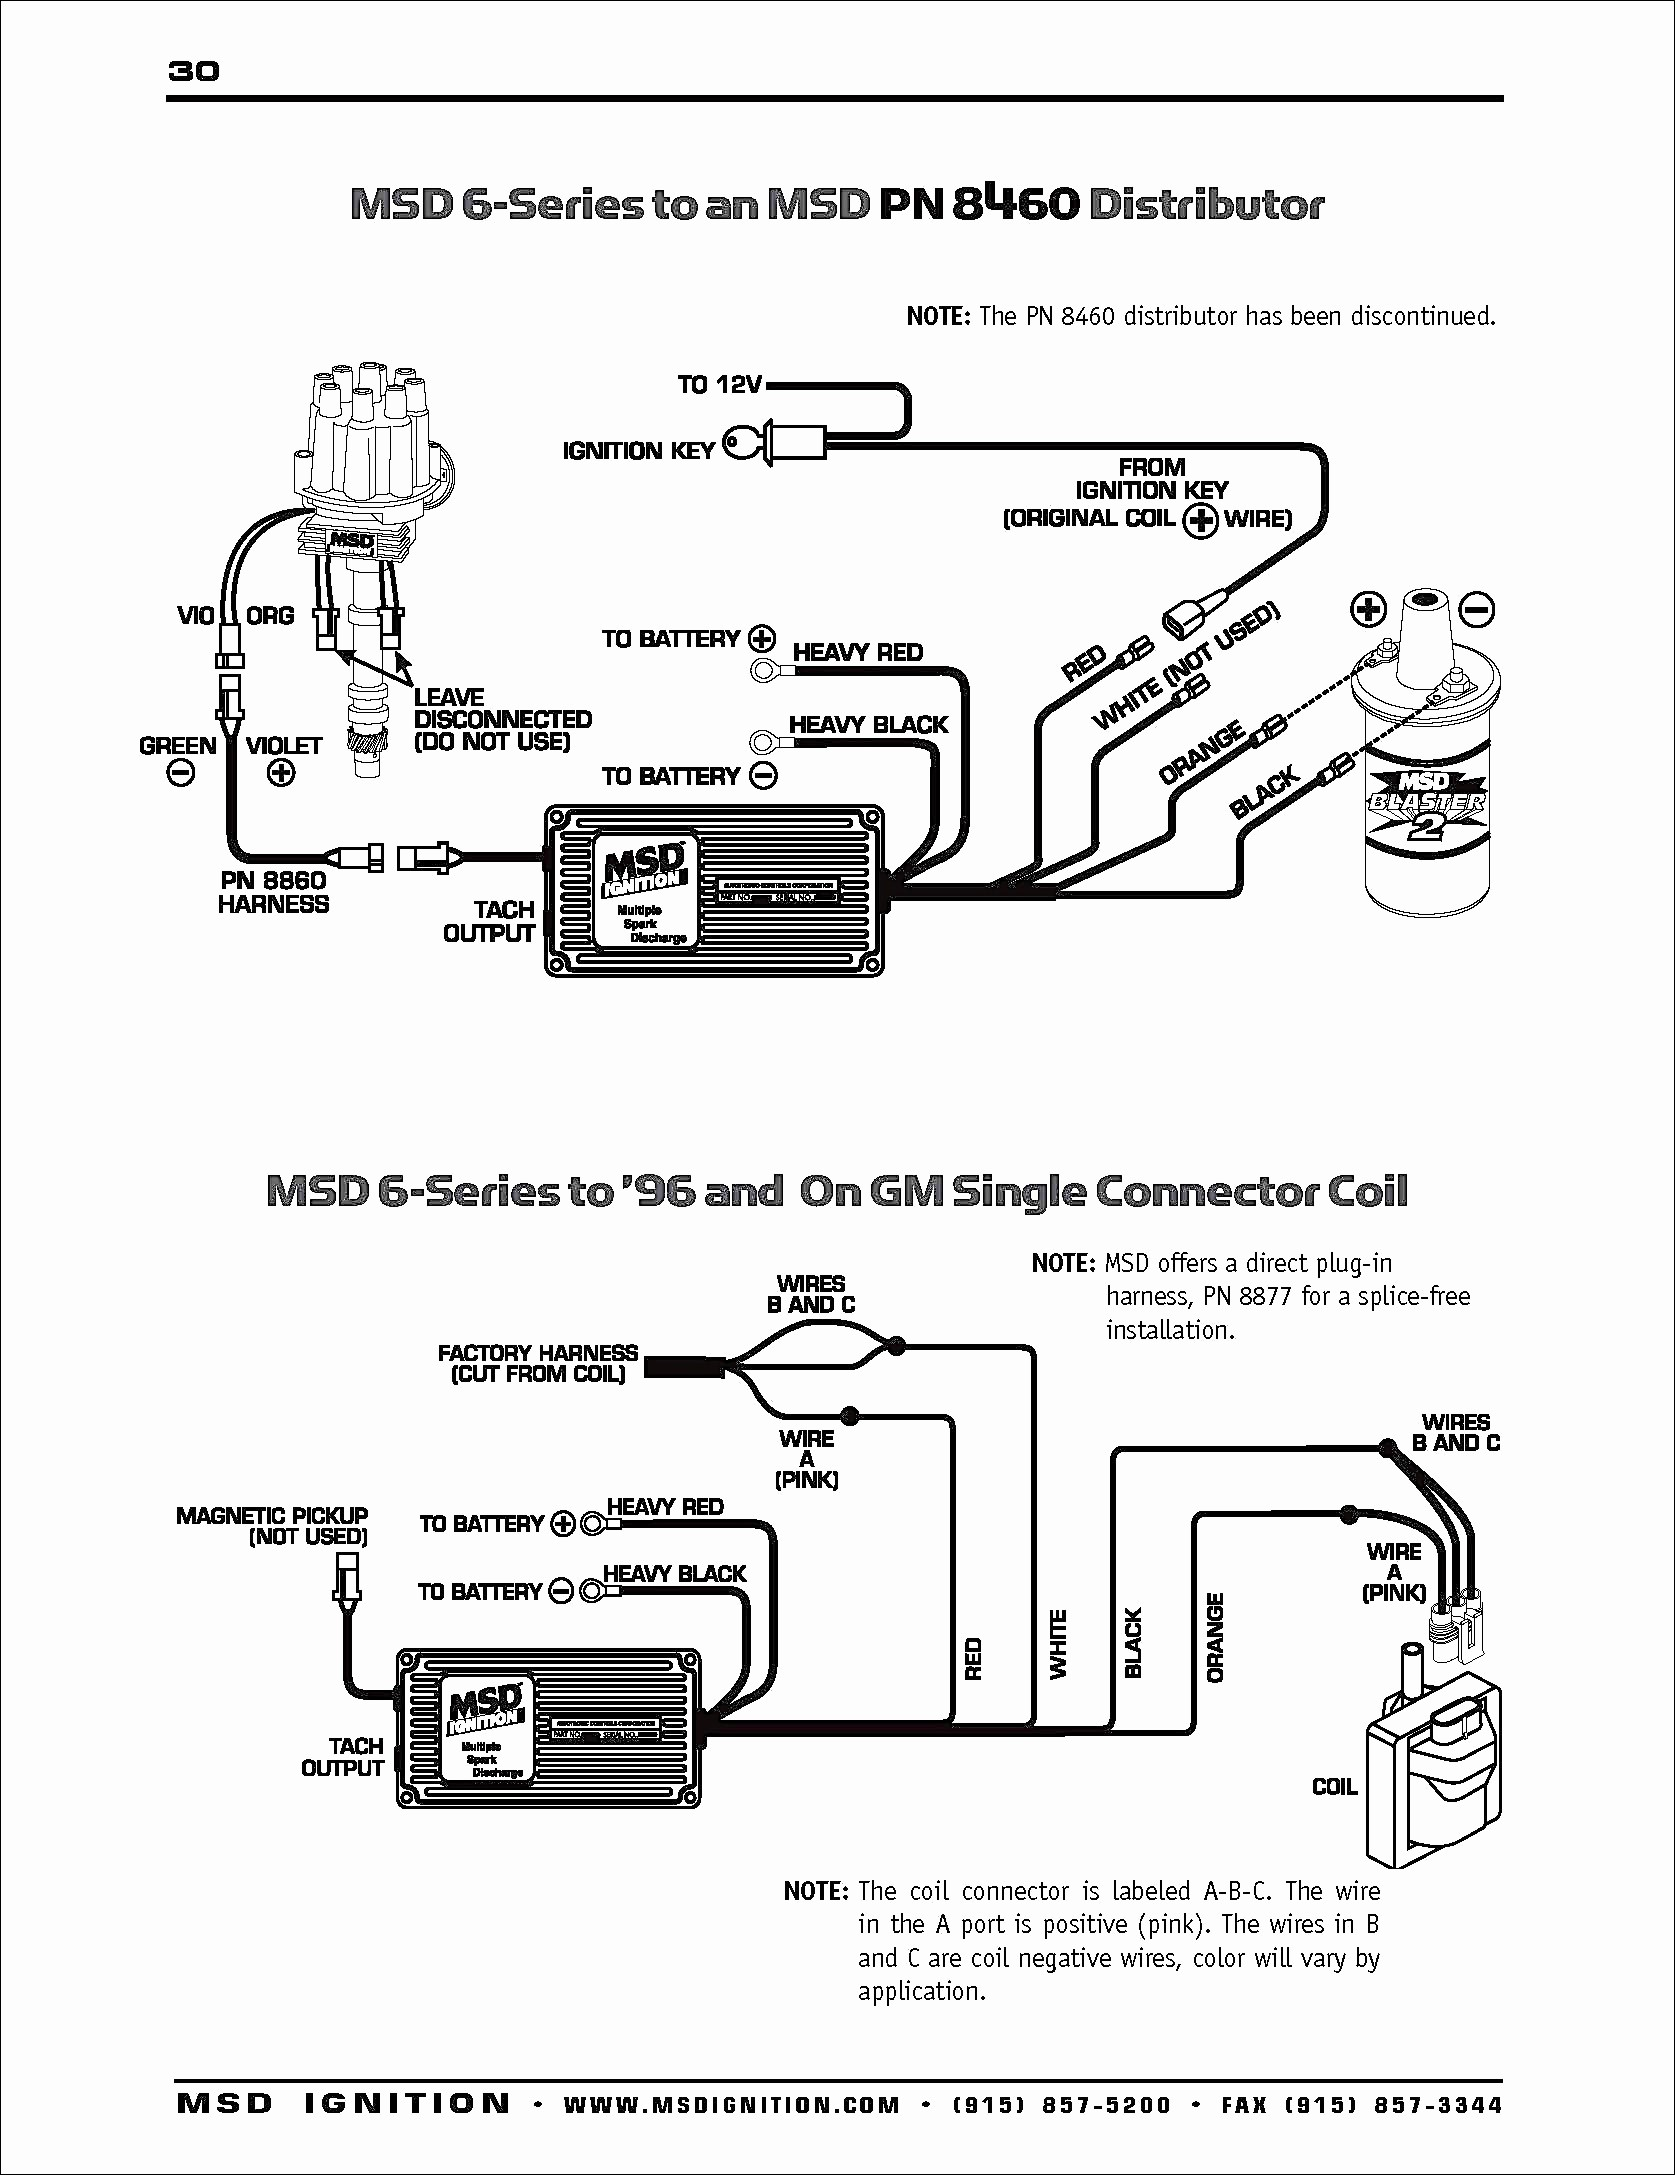 Scosche Interface Gm2000Sw Wiring Diagram from mainetreasurechest.com